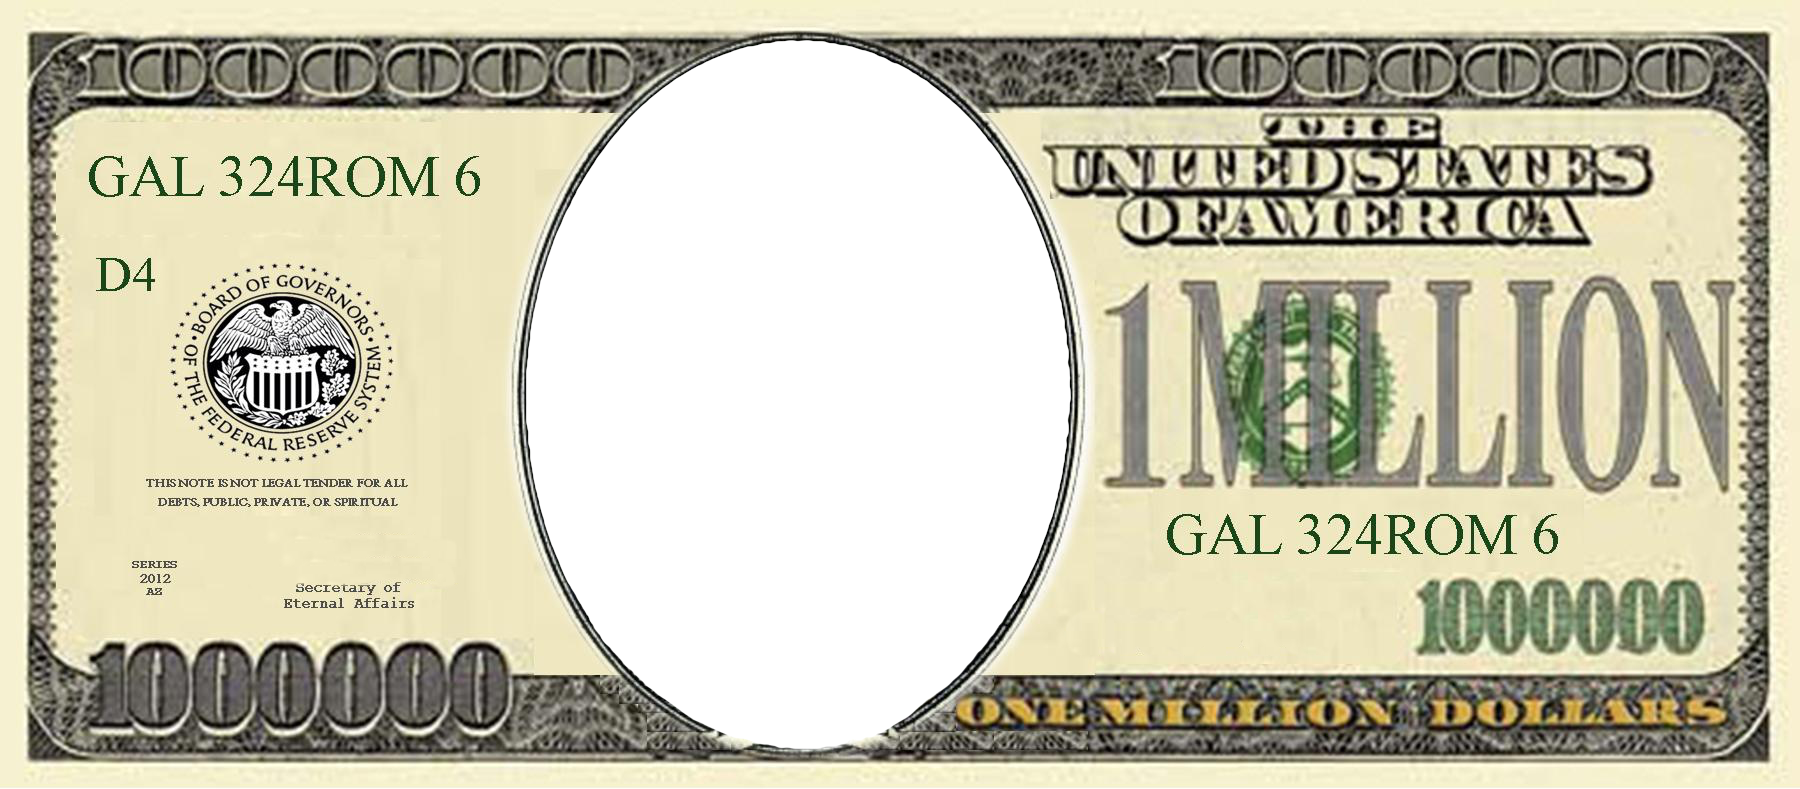 Million dollar bill image clipart images gallery for free.